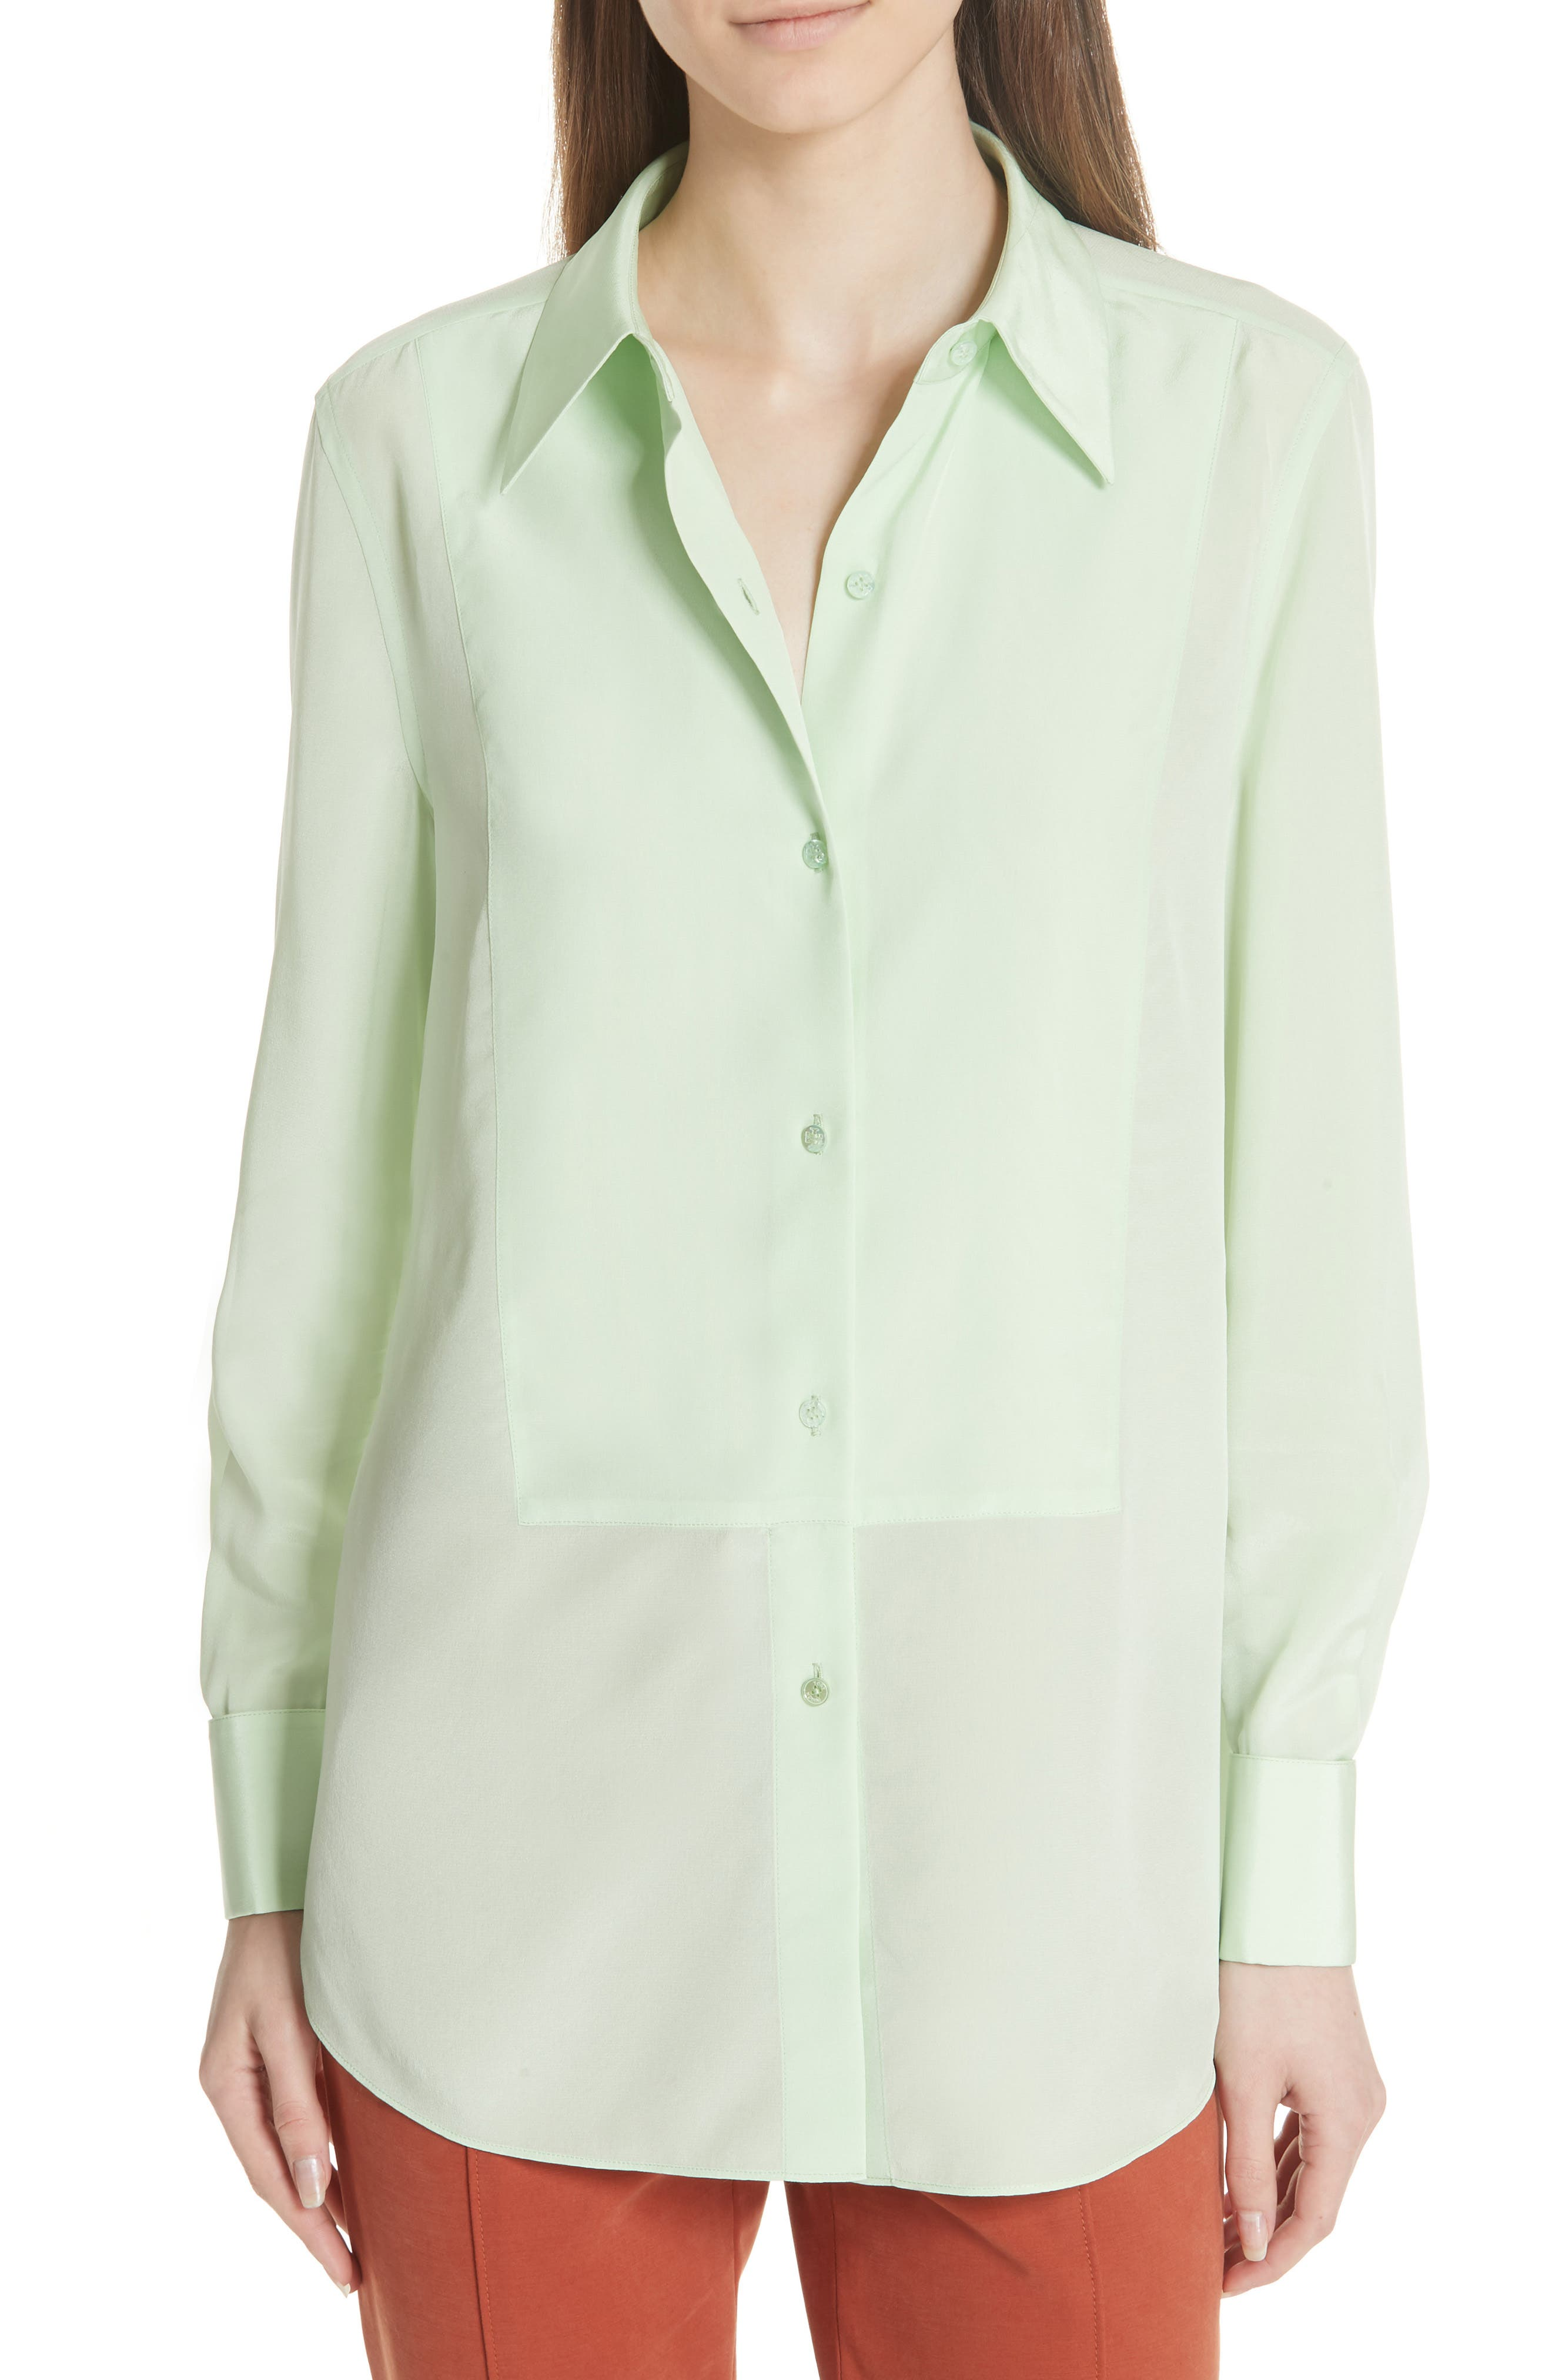 Janet Silk Top,                             Main thumbnail 1, color,                             Crushed Mint